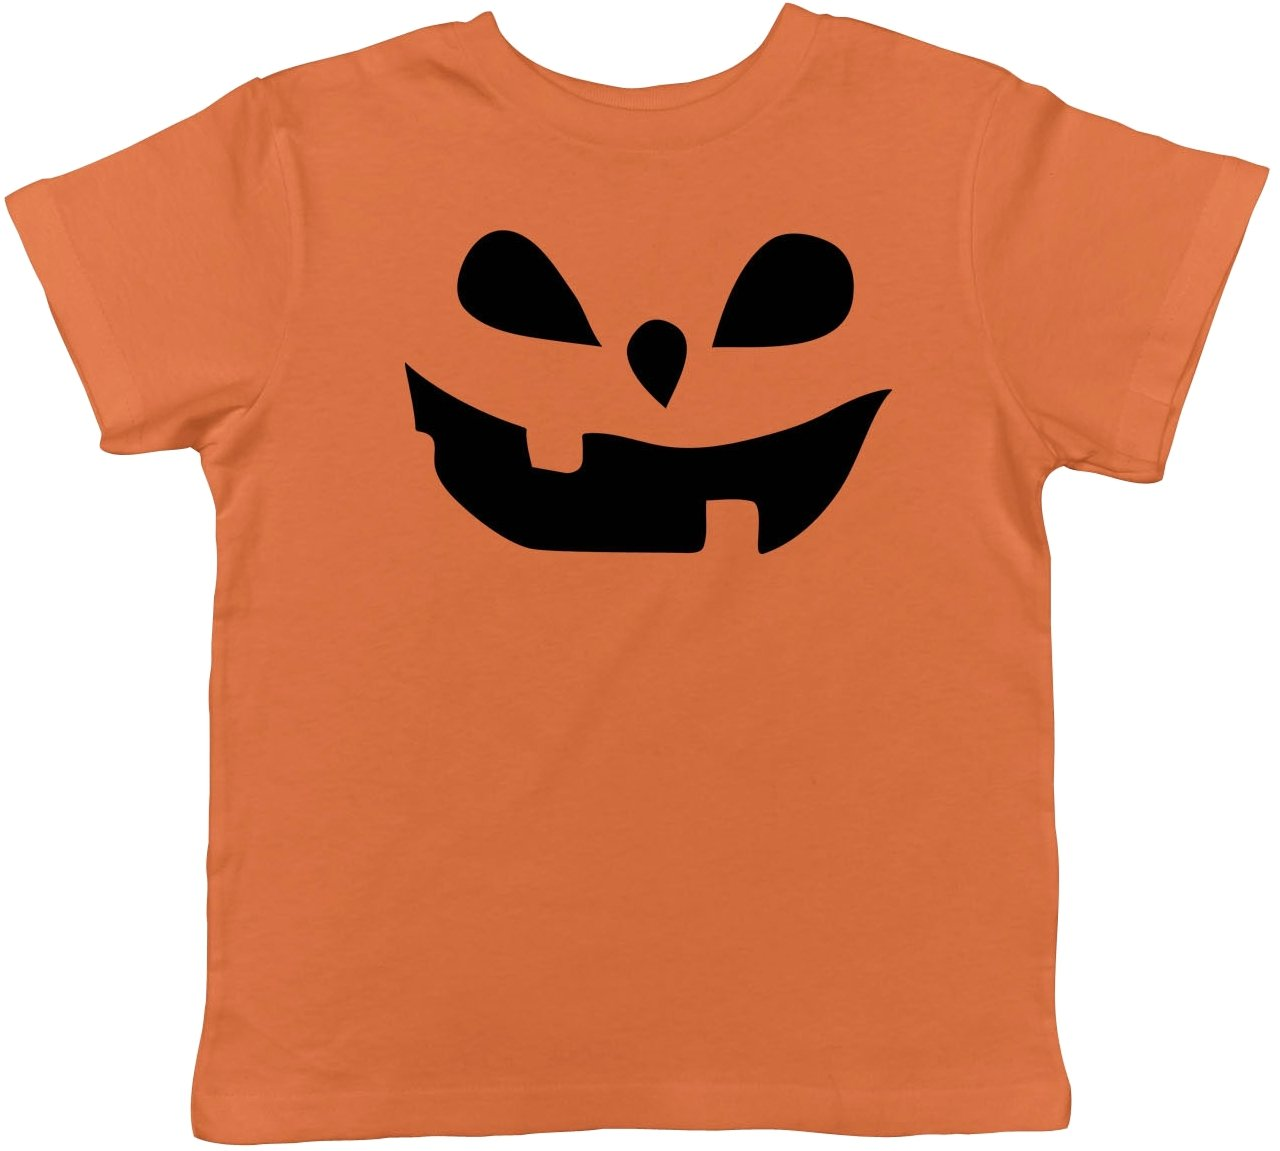 Toddler Teardrop Eyes Pumpkin Face Funny Fall Halloween Spooky T shirt Crazy Dog Tshirts